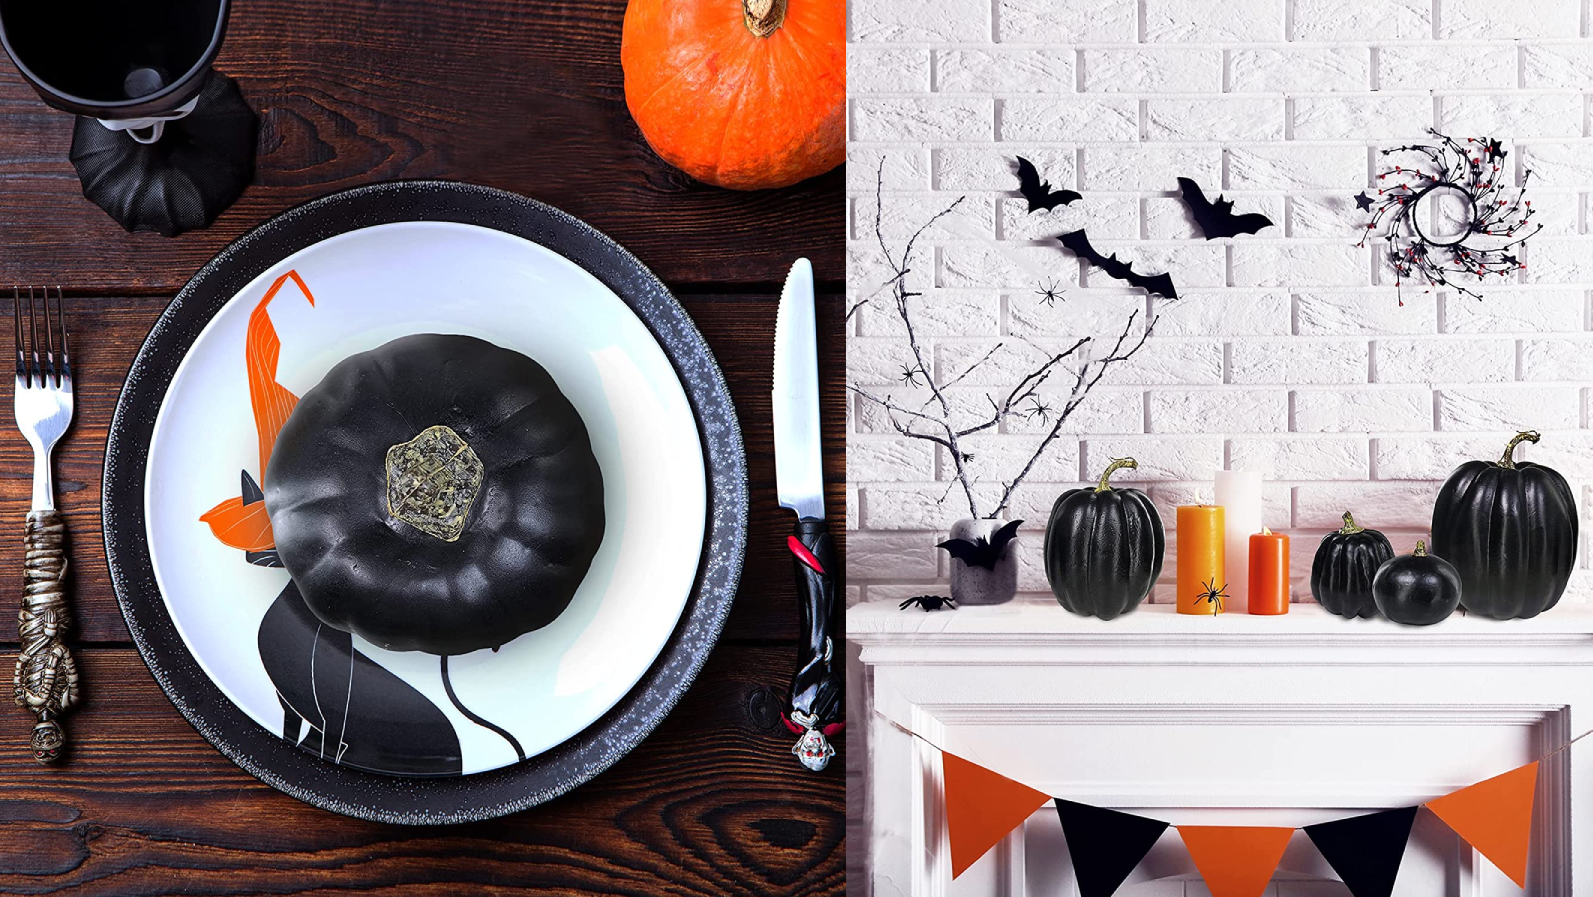 There are so many ways to decorate with these classy pumpkins.